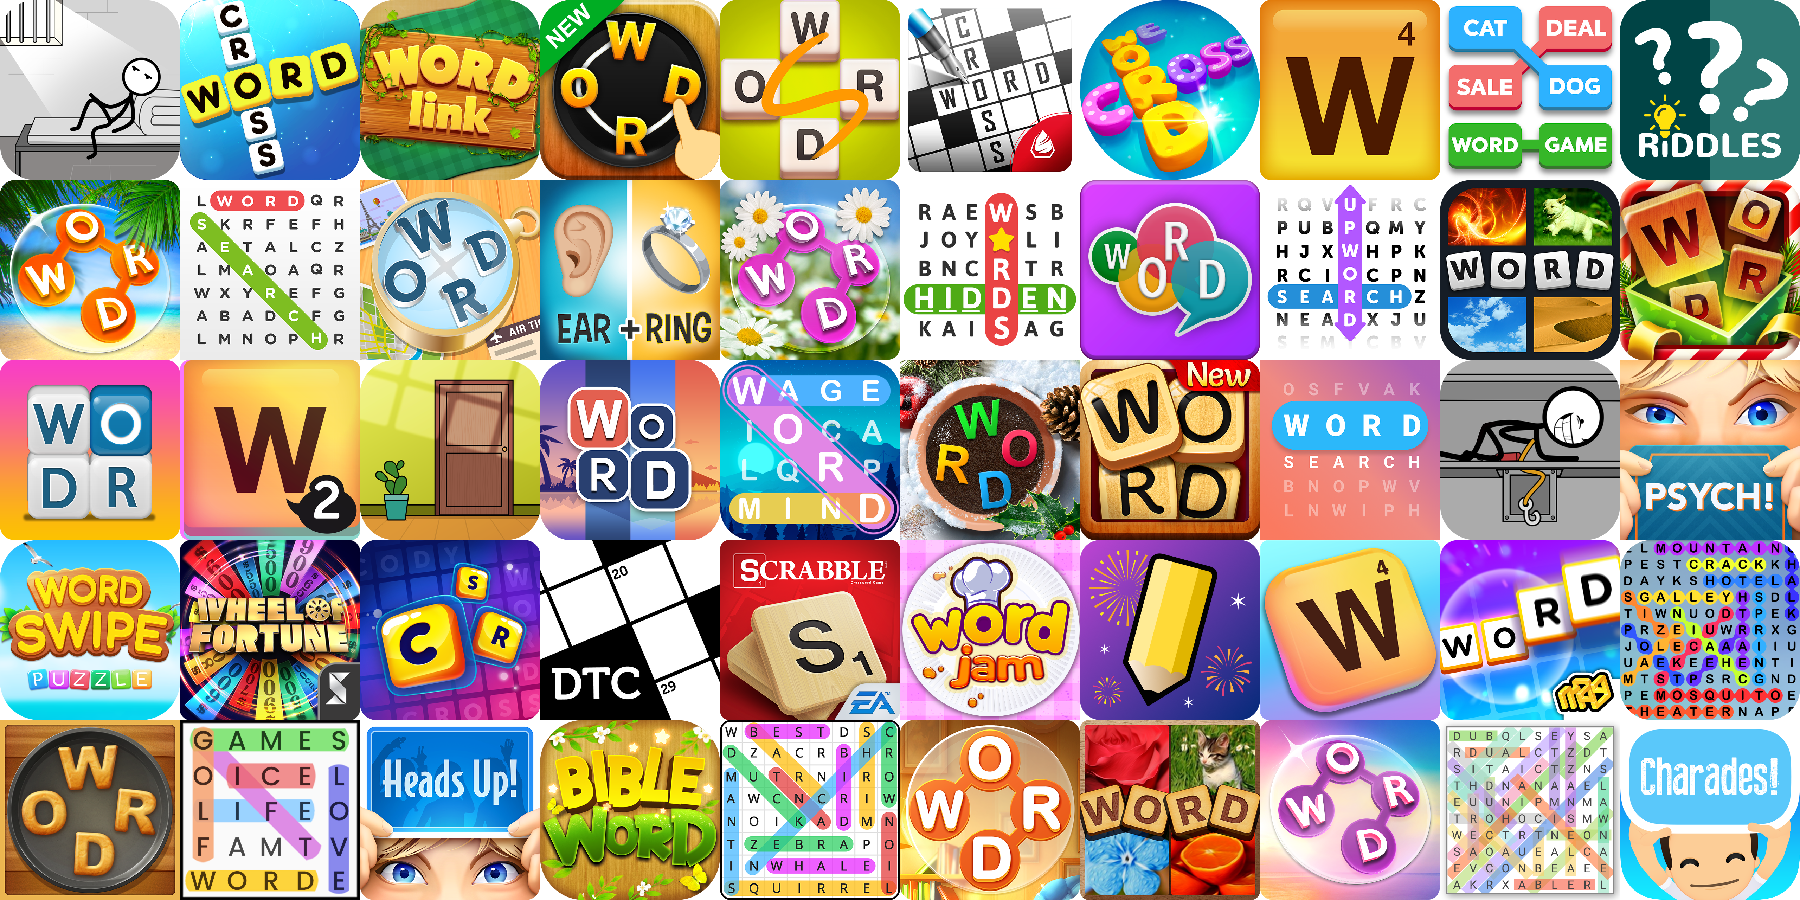 App icons of Top 50 mobile games in the US Play Store Game - Word Category